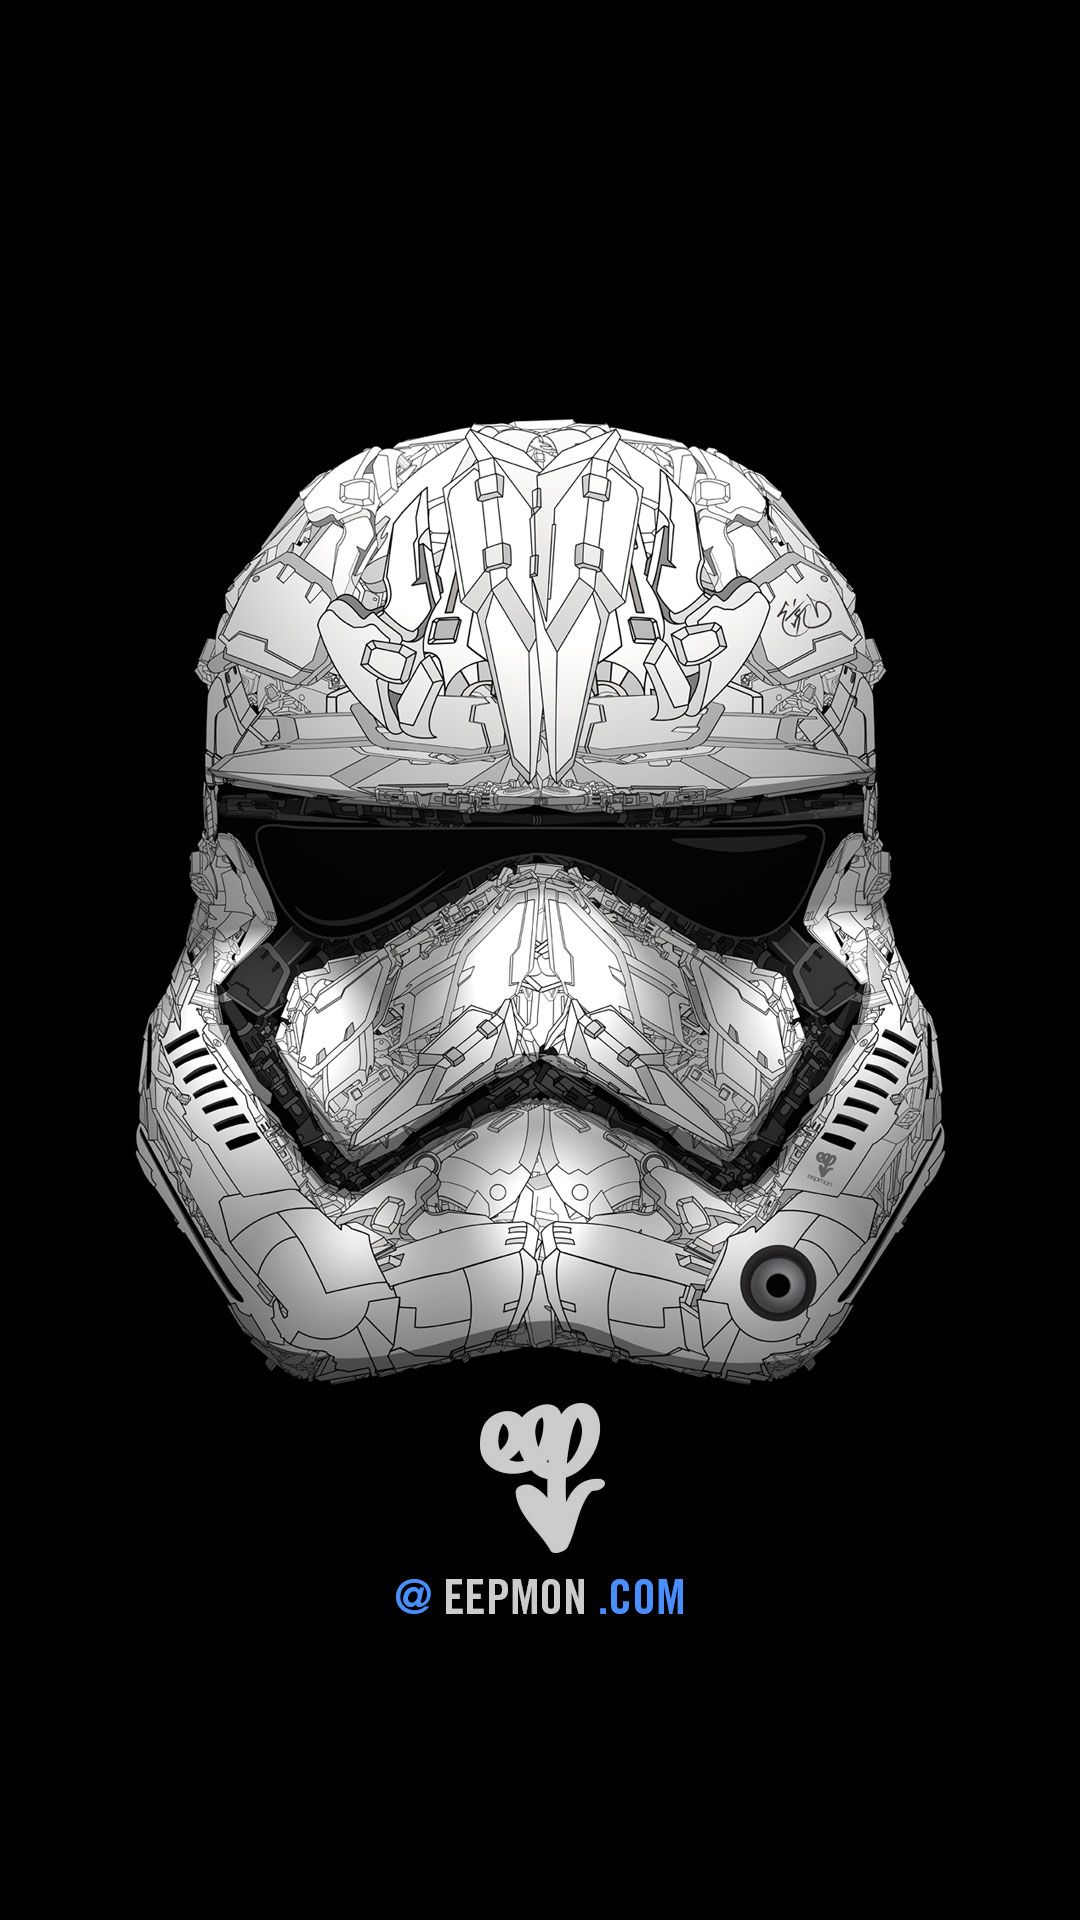 Stormtrooper Star Wars iPhone wallpaper Fondos de